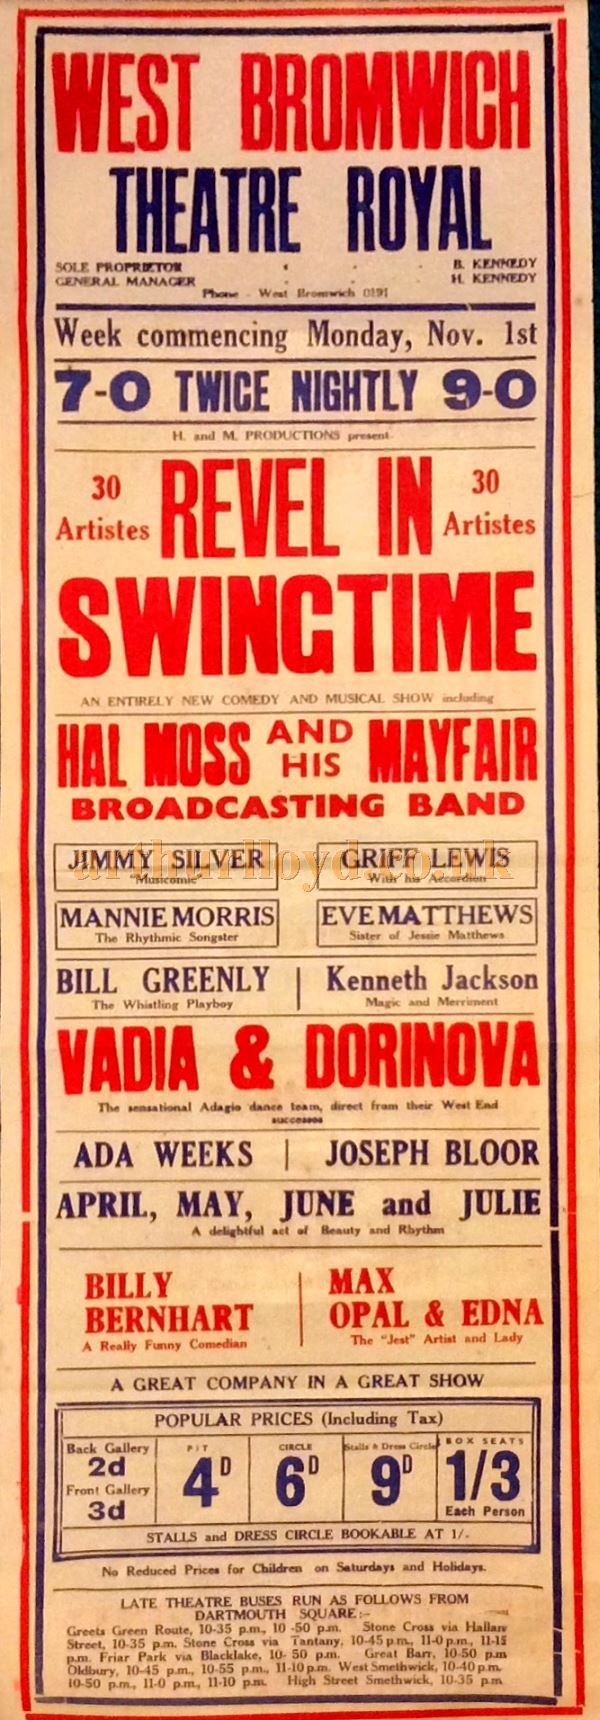 A Poster for 'Revel In Swingtime' at the Theatre Royal, Bromwich in November 1937 - Courtesy Trevor butler.